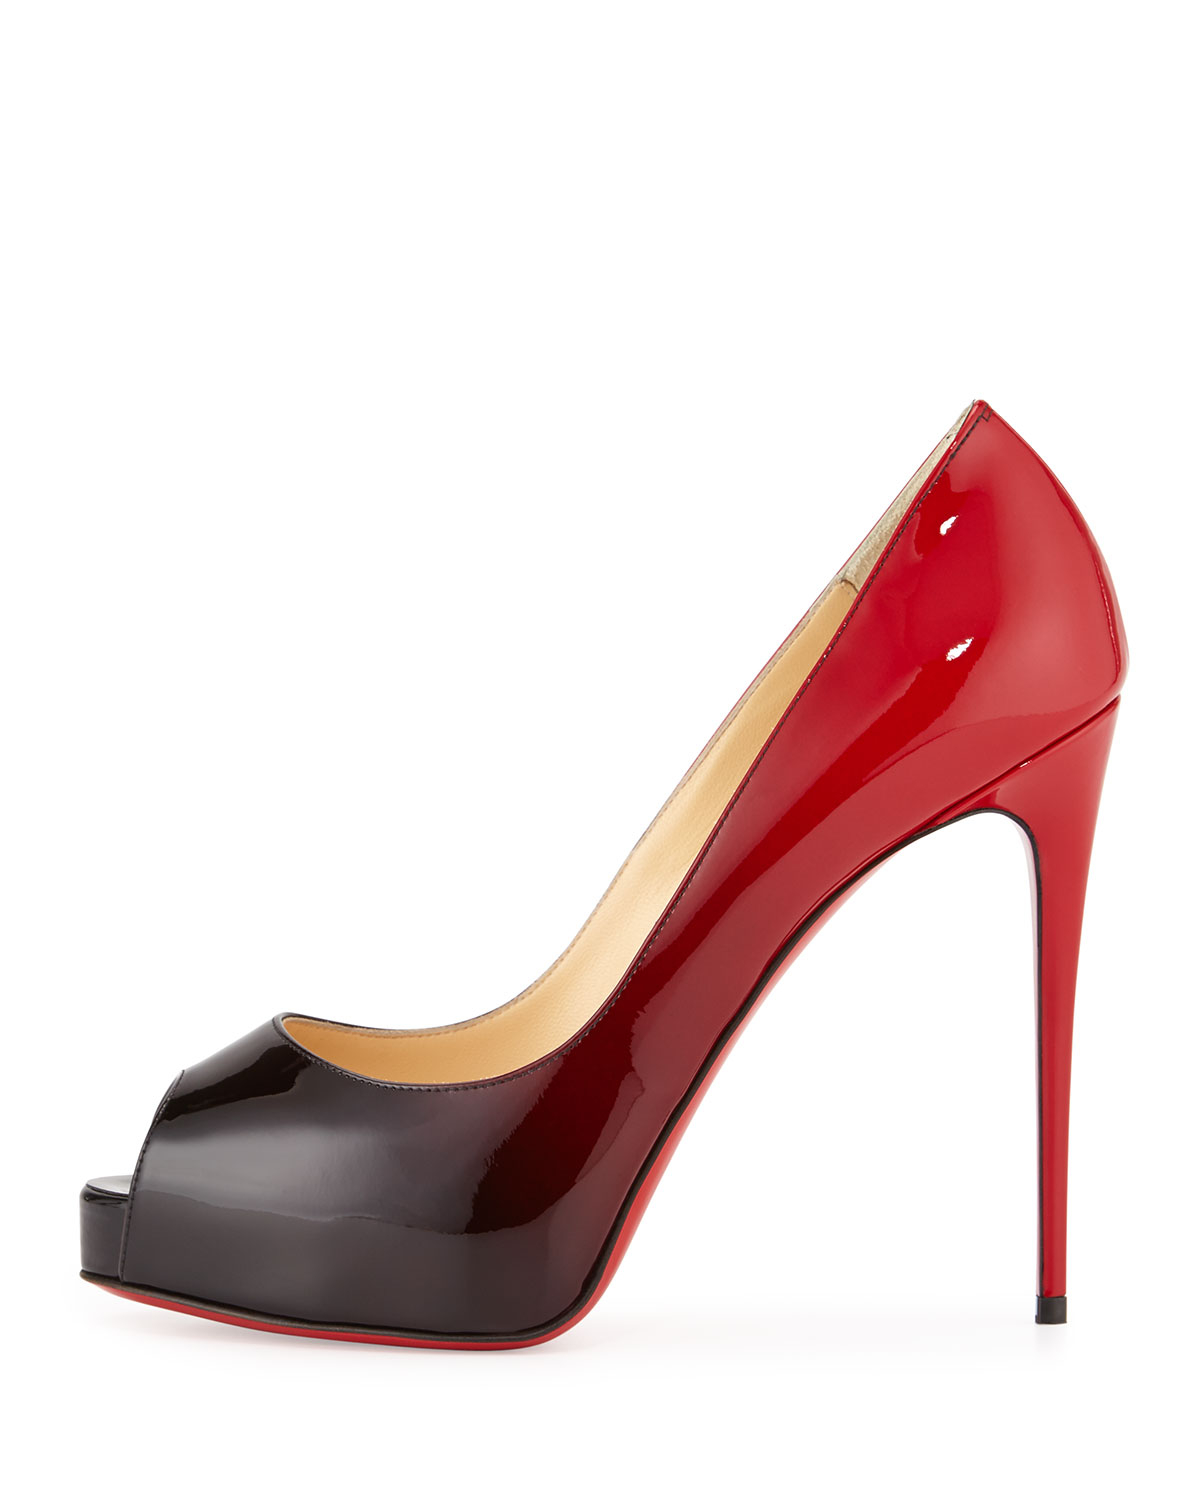 5e9a085ab65 Christian Louboutin Black New Very Prive Ombre Peep-toe Red Sole Pump